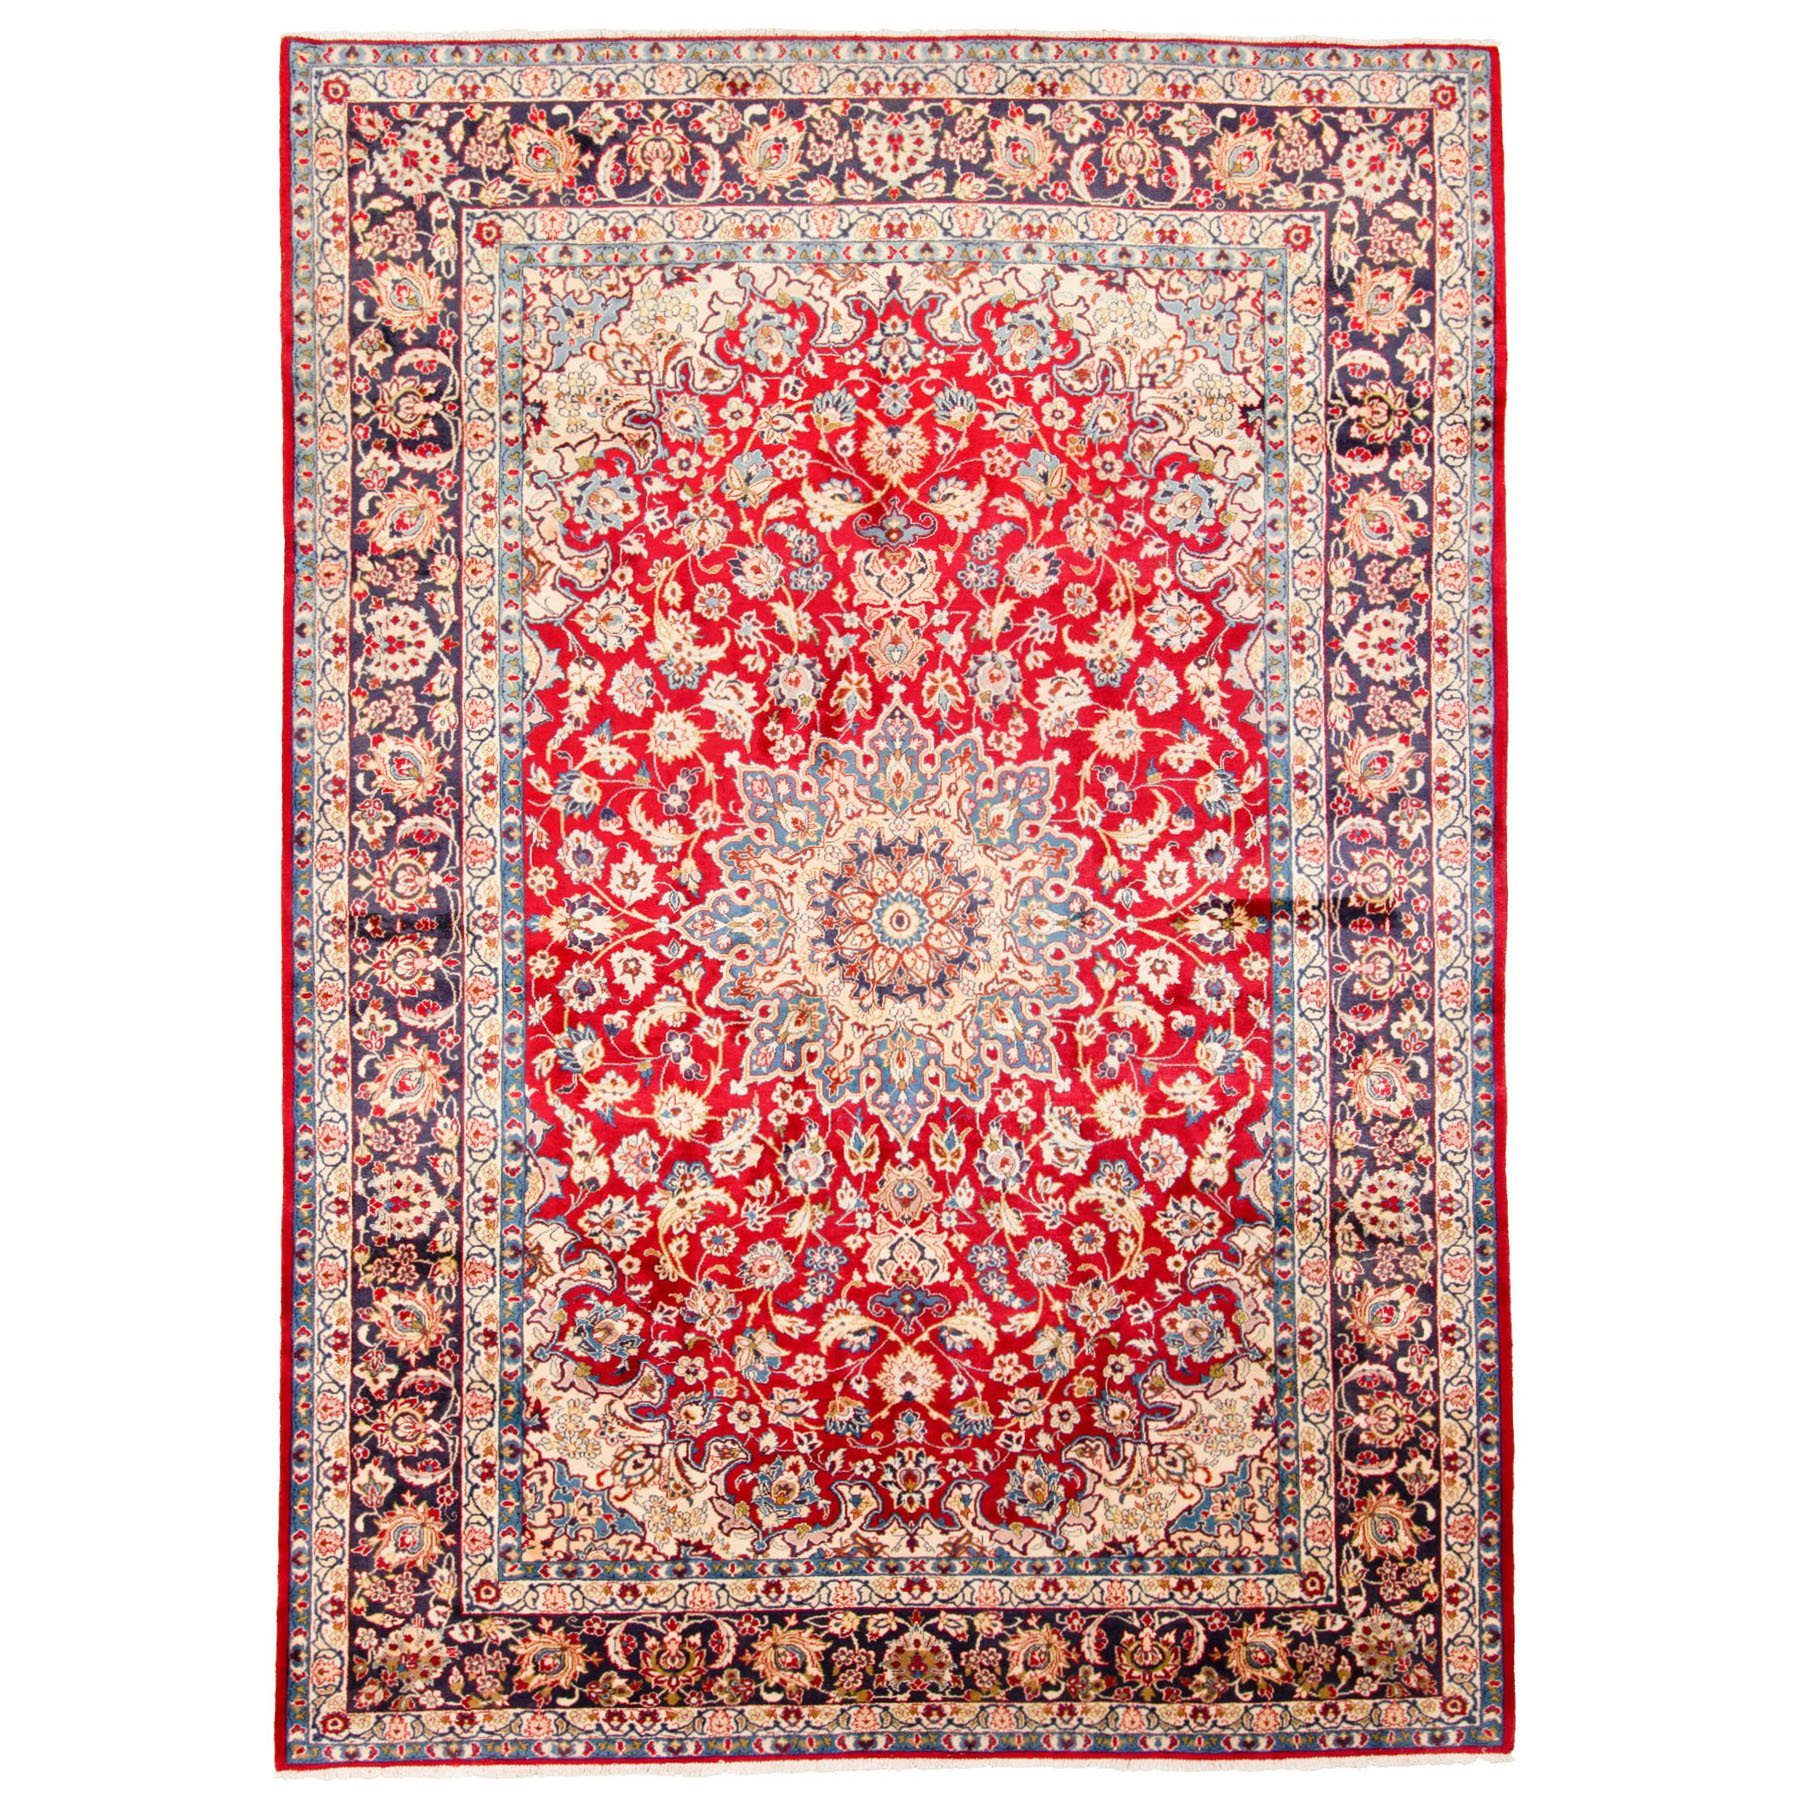 """9'10""""X14'1"""" Red Semi Antique Persian Isfahan Pure Wool Hand Knotted Oriental Rug R47881"""